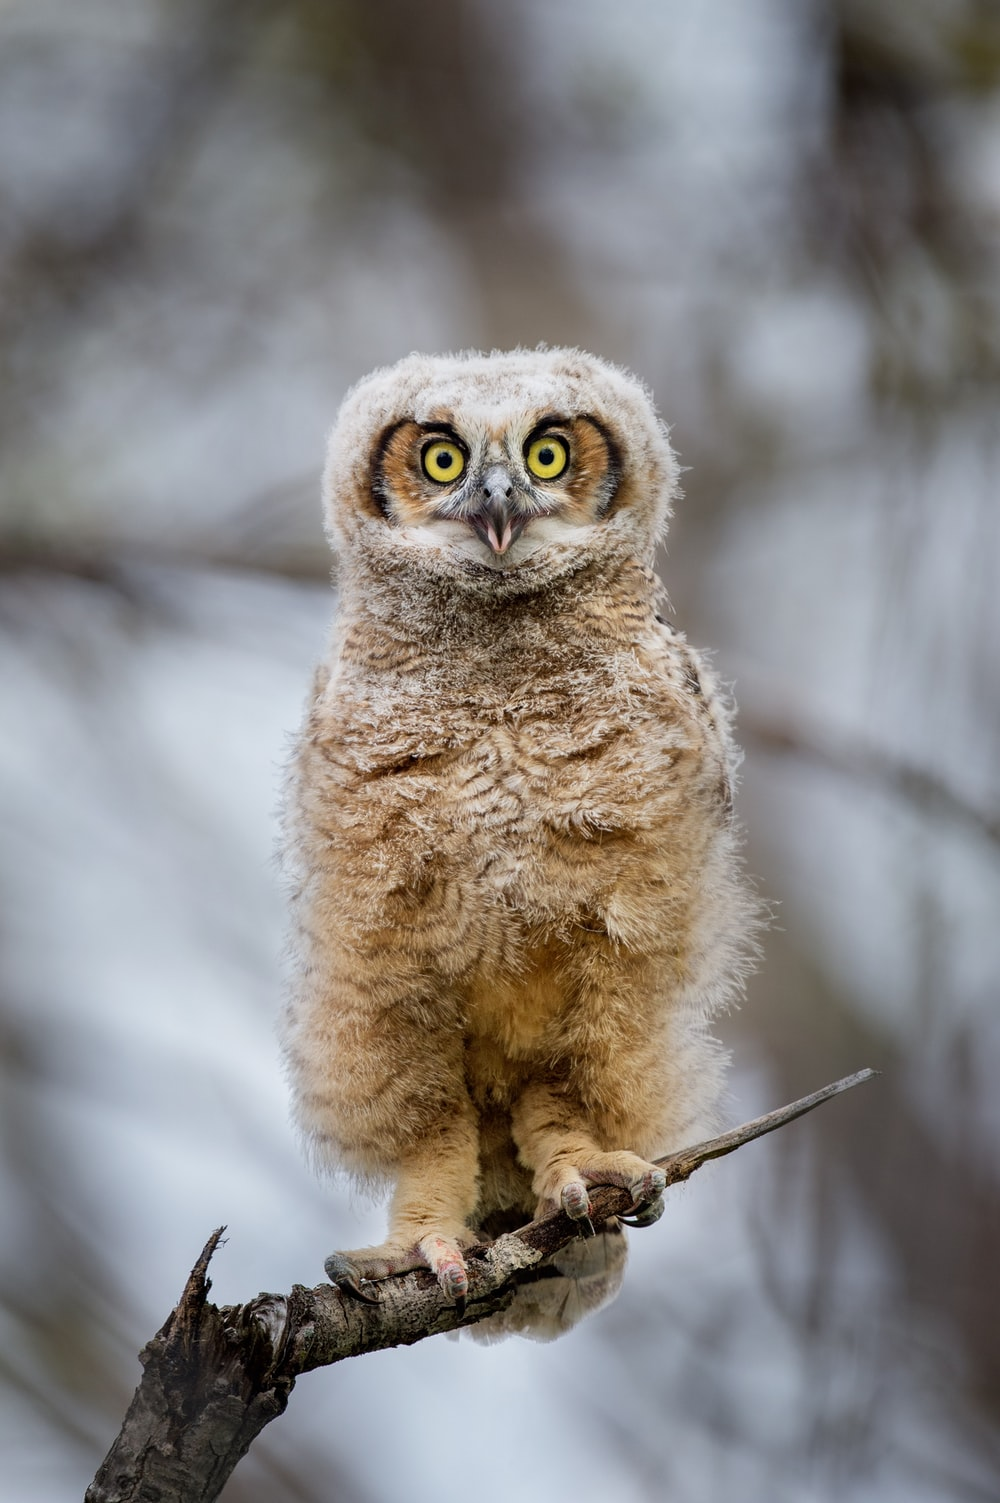 brown owl on snow covered ground during daytime